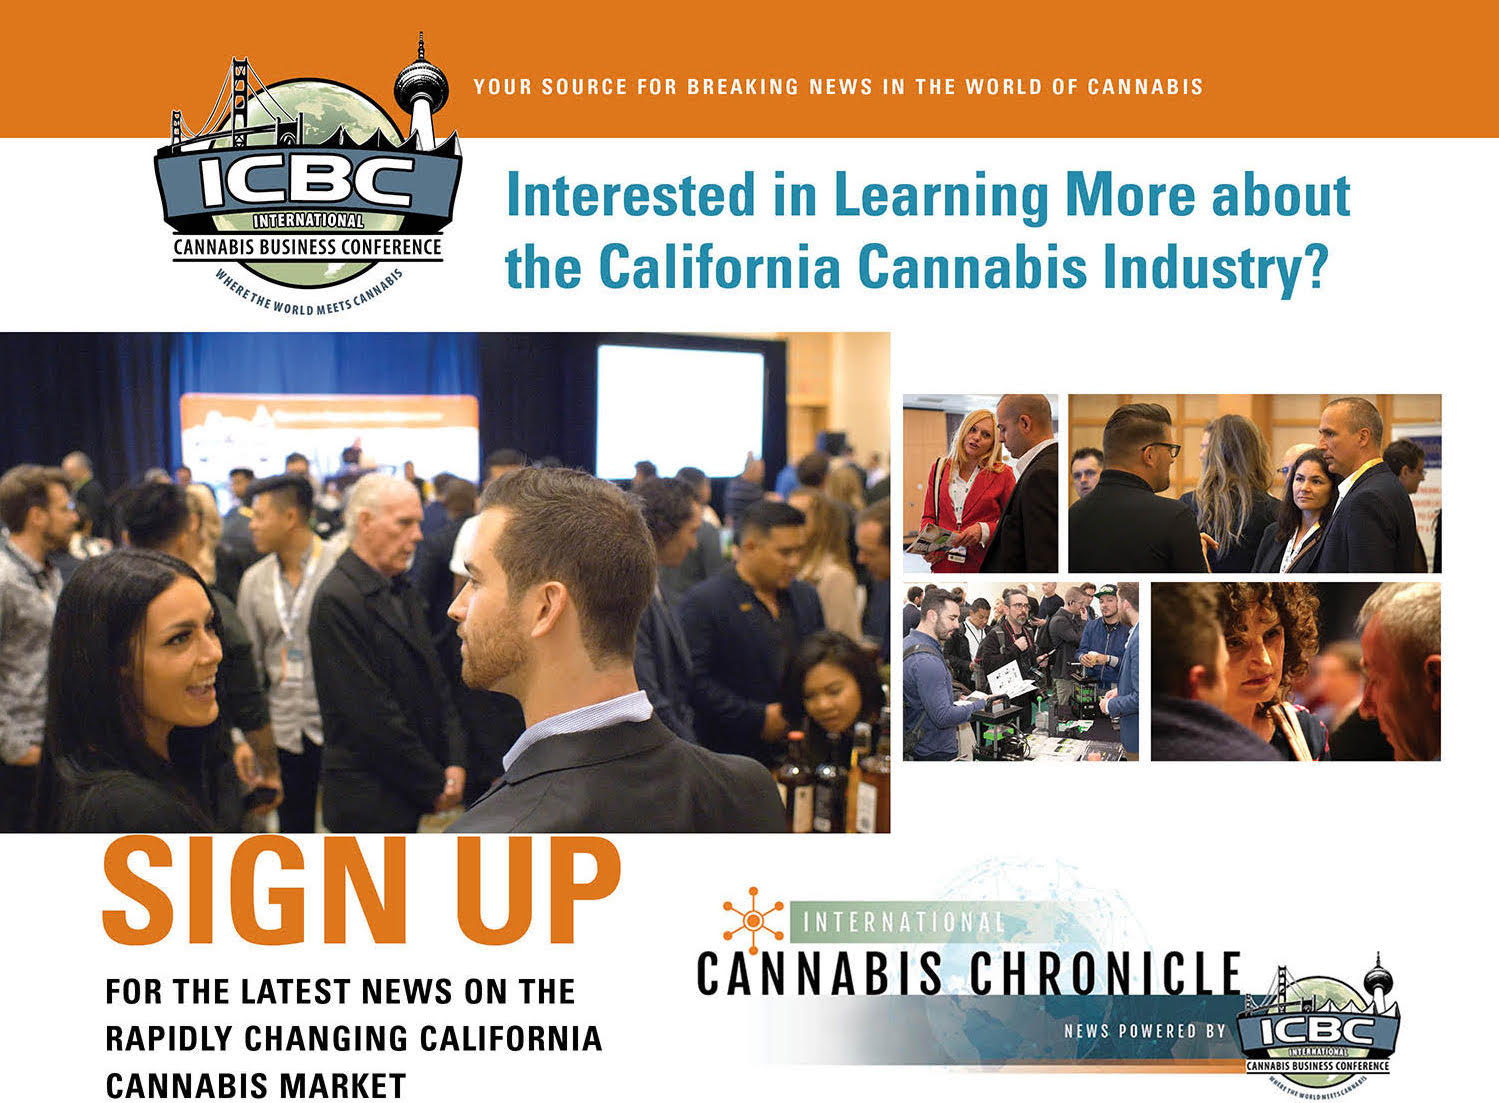 ICBC Cannabis Chronicle